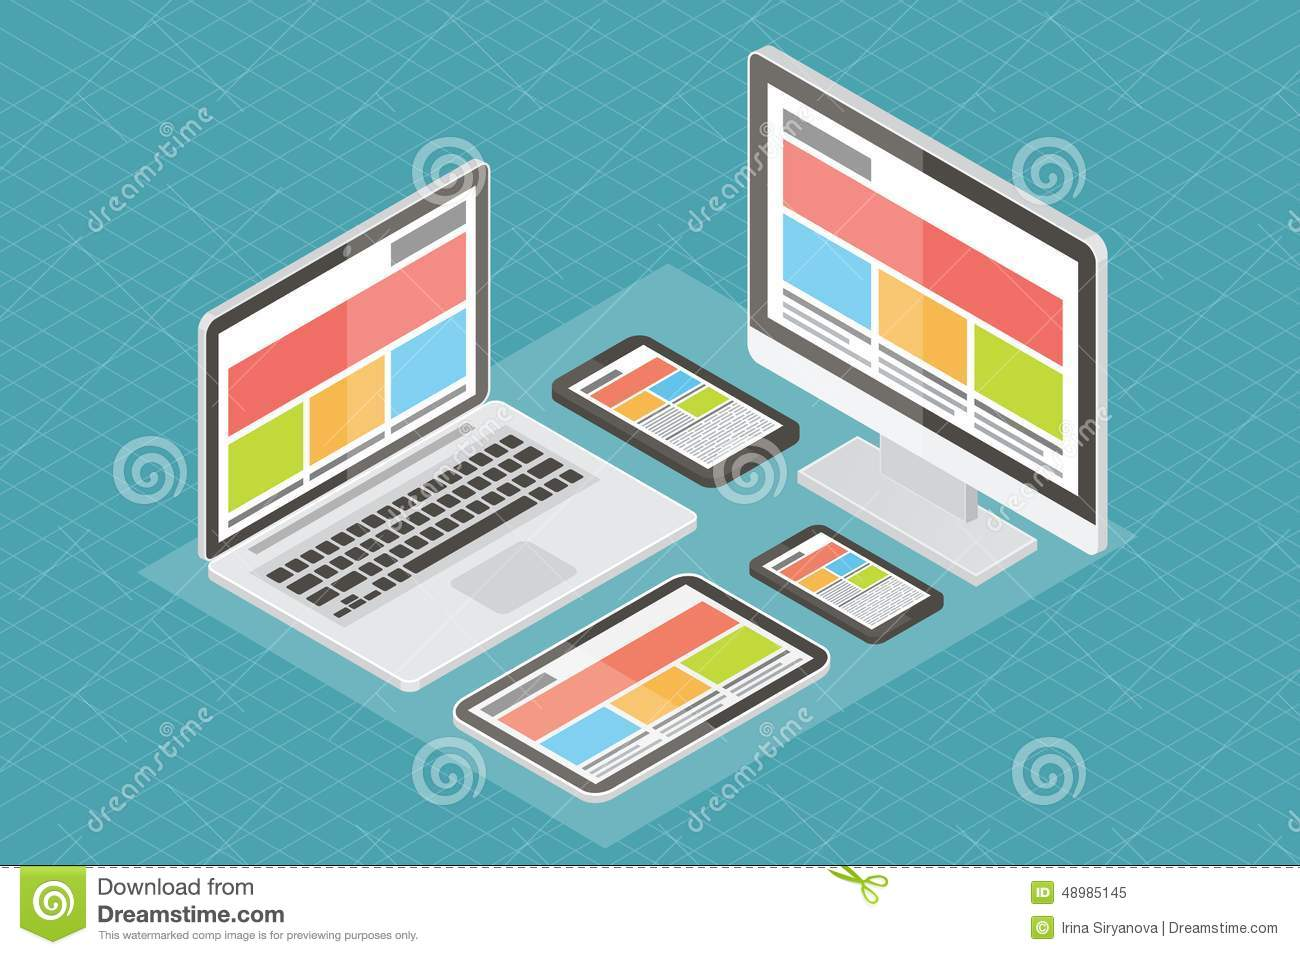 application of computer in design